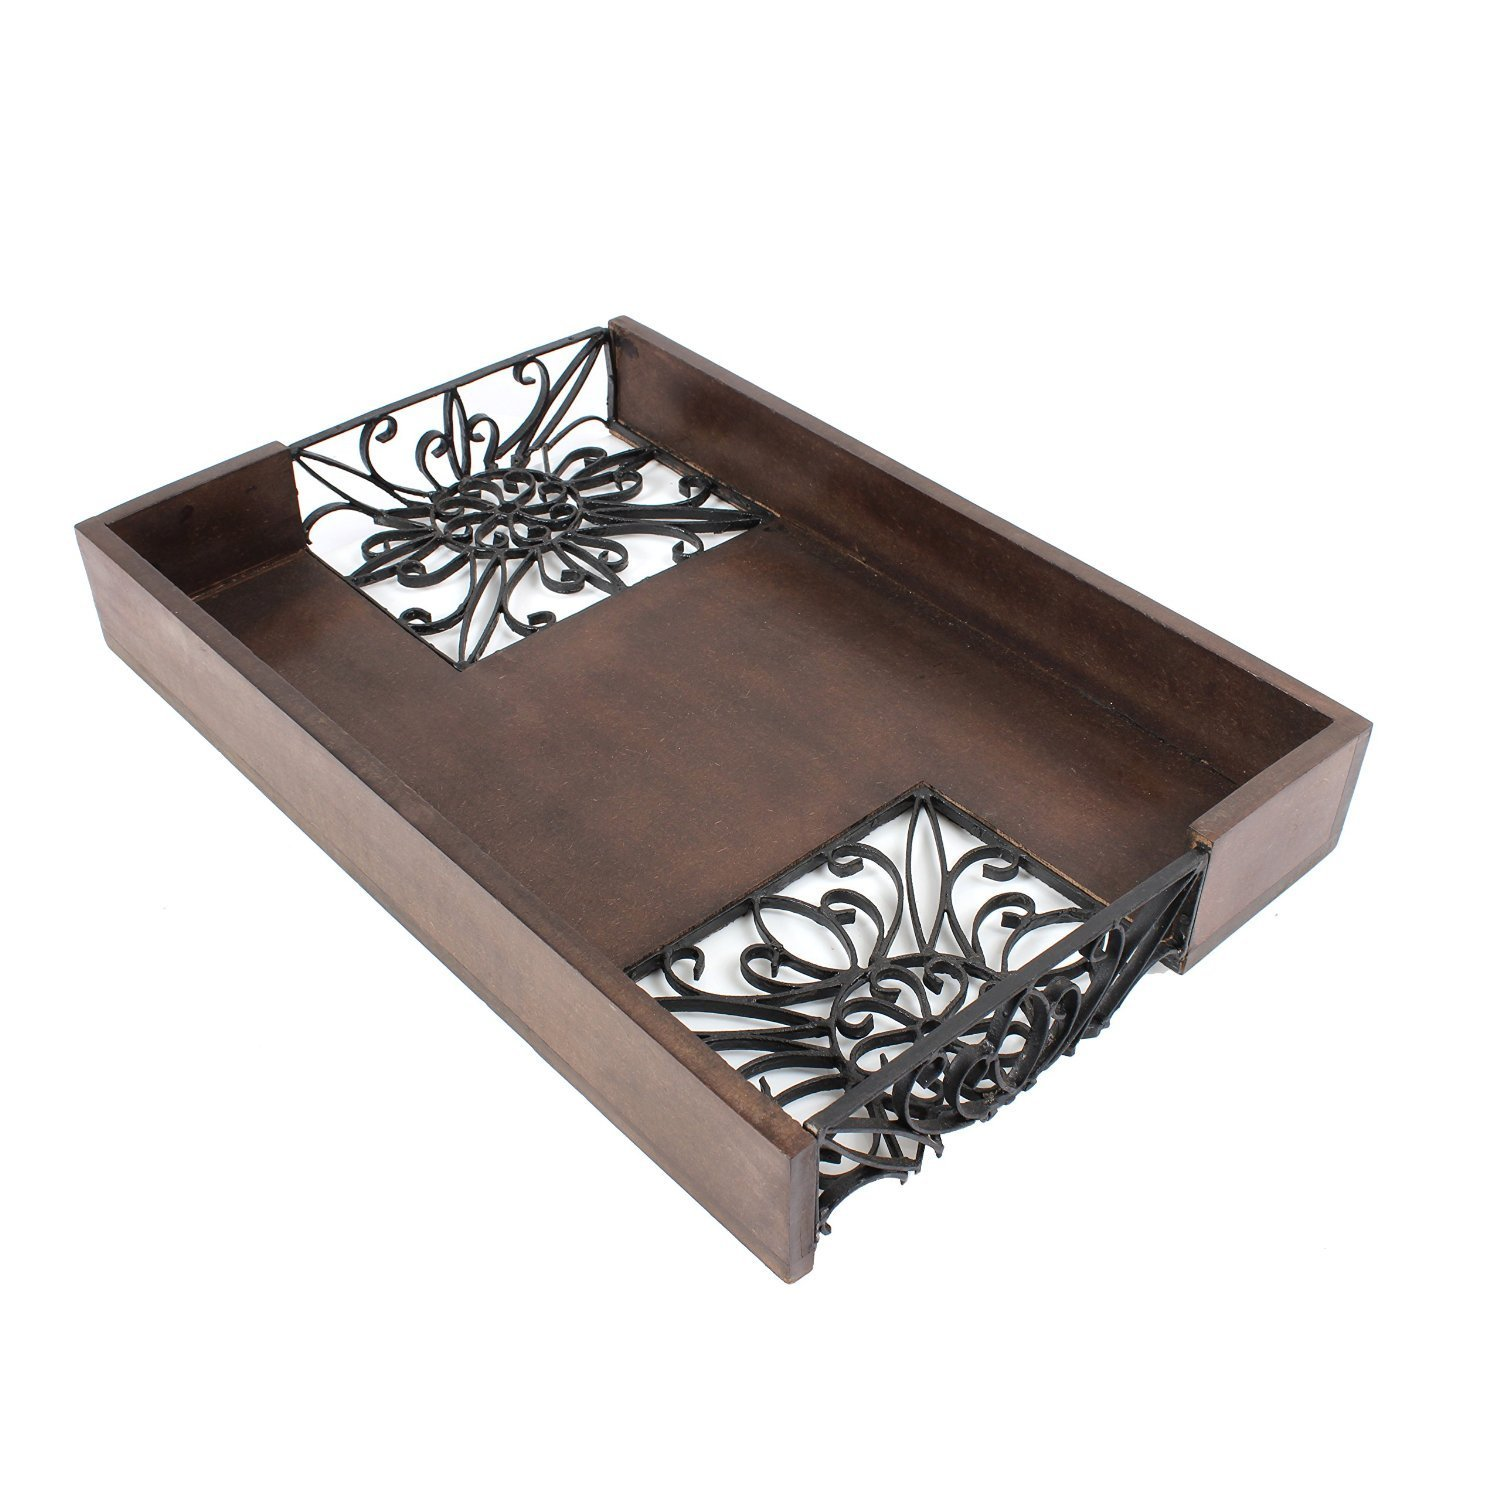 Store Indya Wooden Rectangular Breakfast Serving Tray Rustic Hand Carved Decorative Kitchen Accessories storeindya